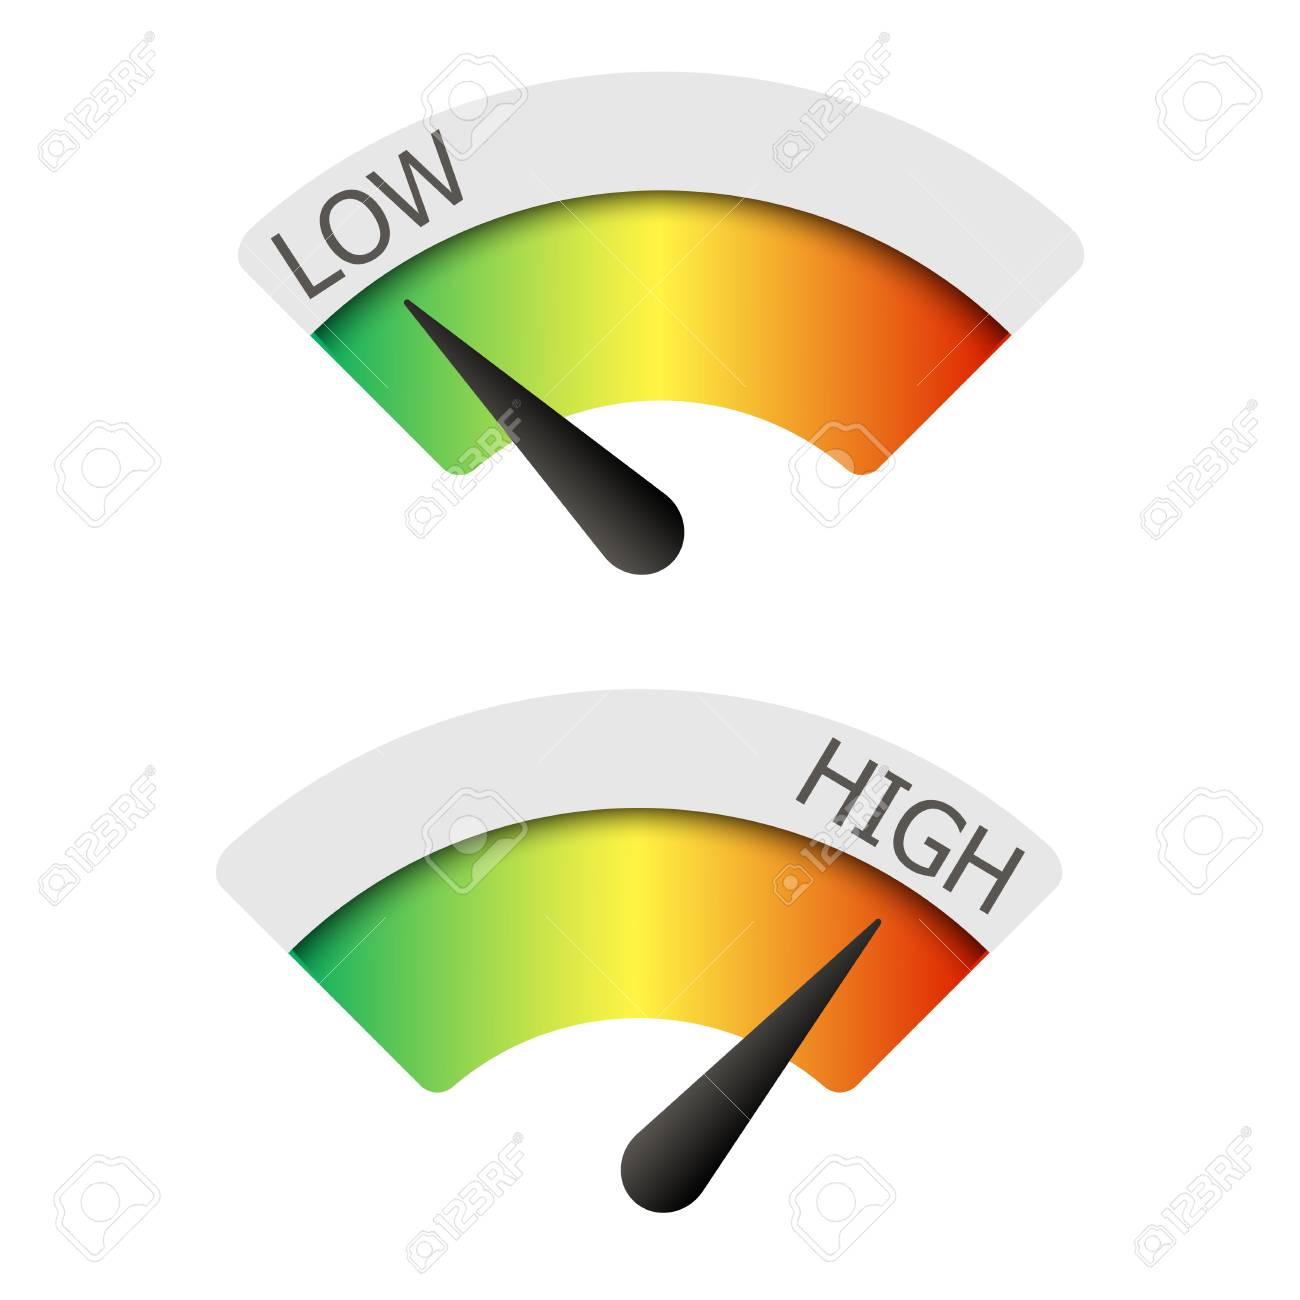 Low and High gauges. Vector illustration. - 90509034